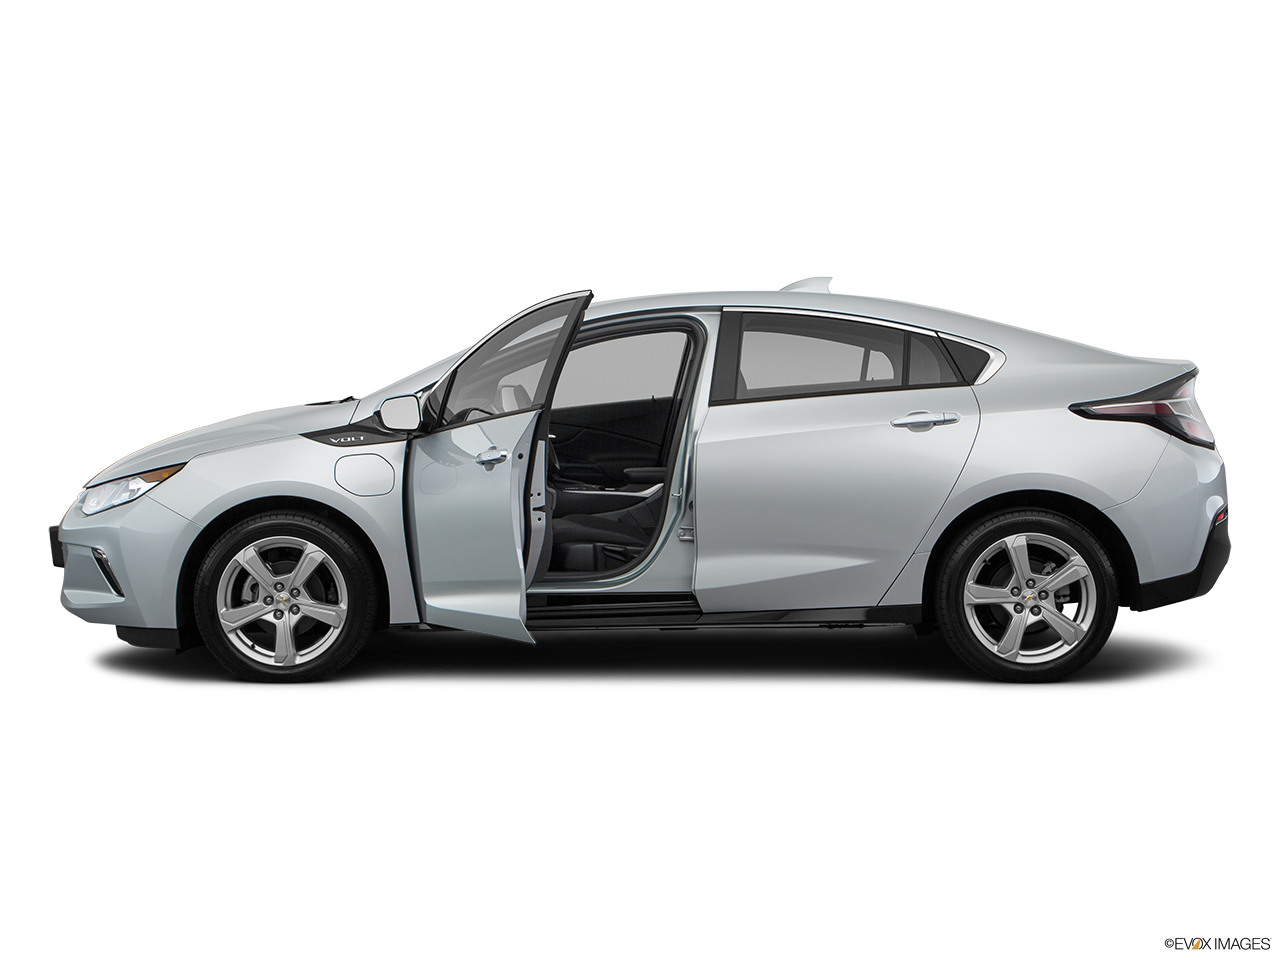 Side view of the Chevrolet Volt